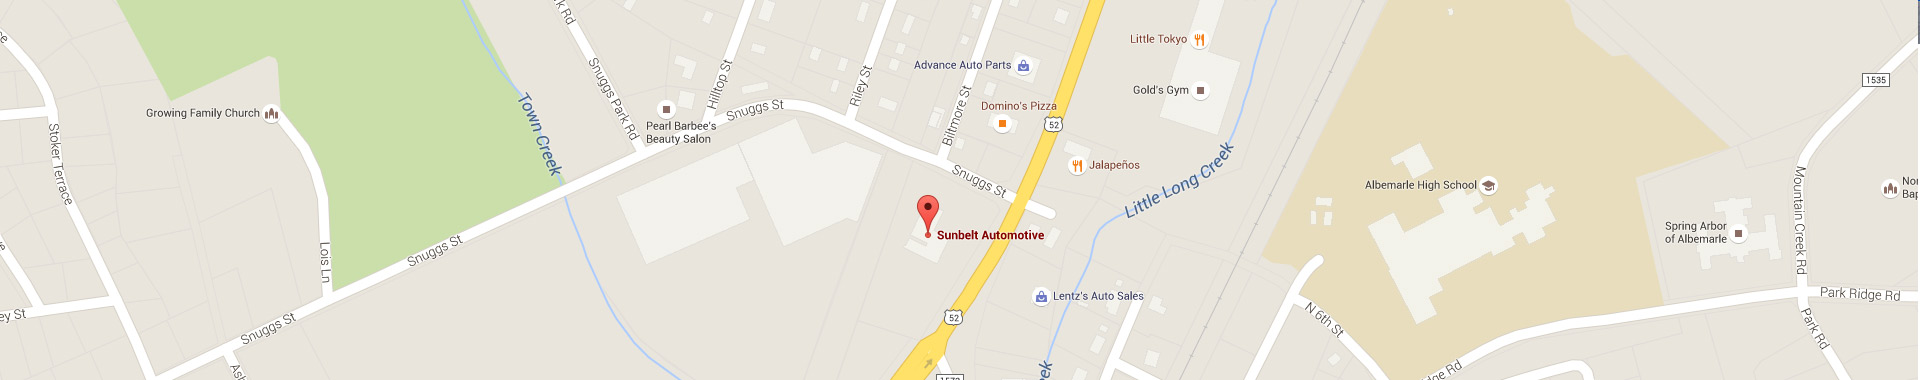 sunbelt automotive